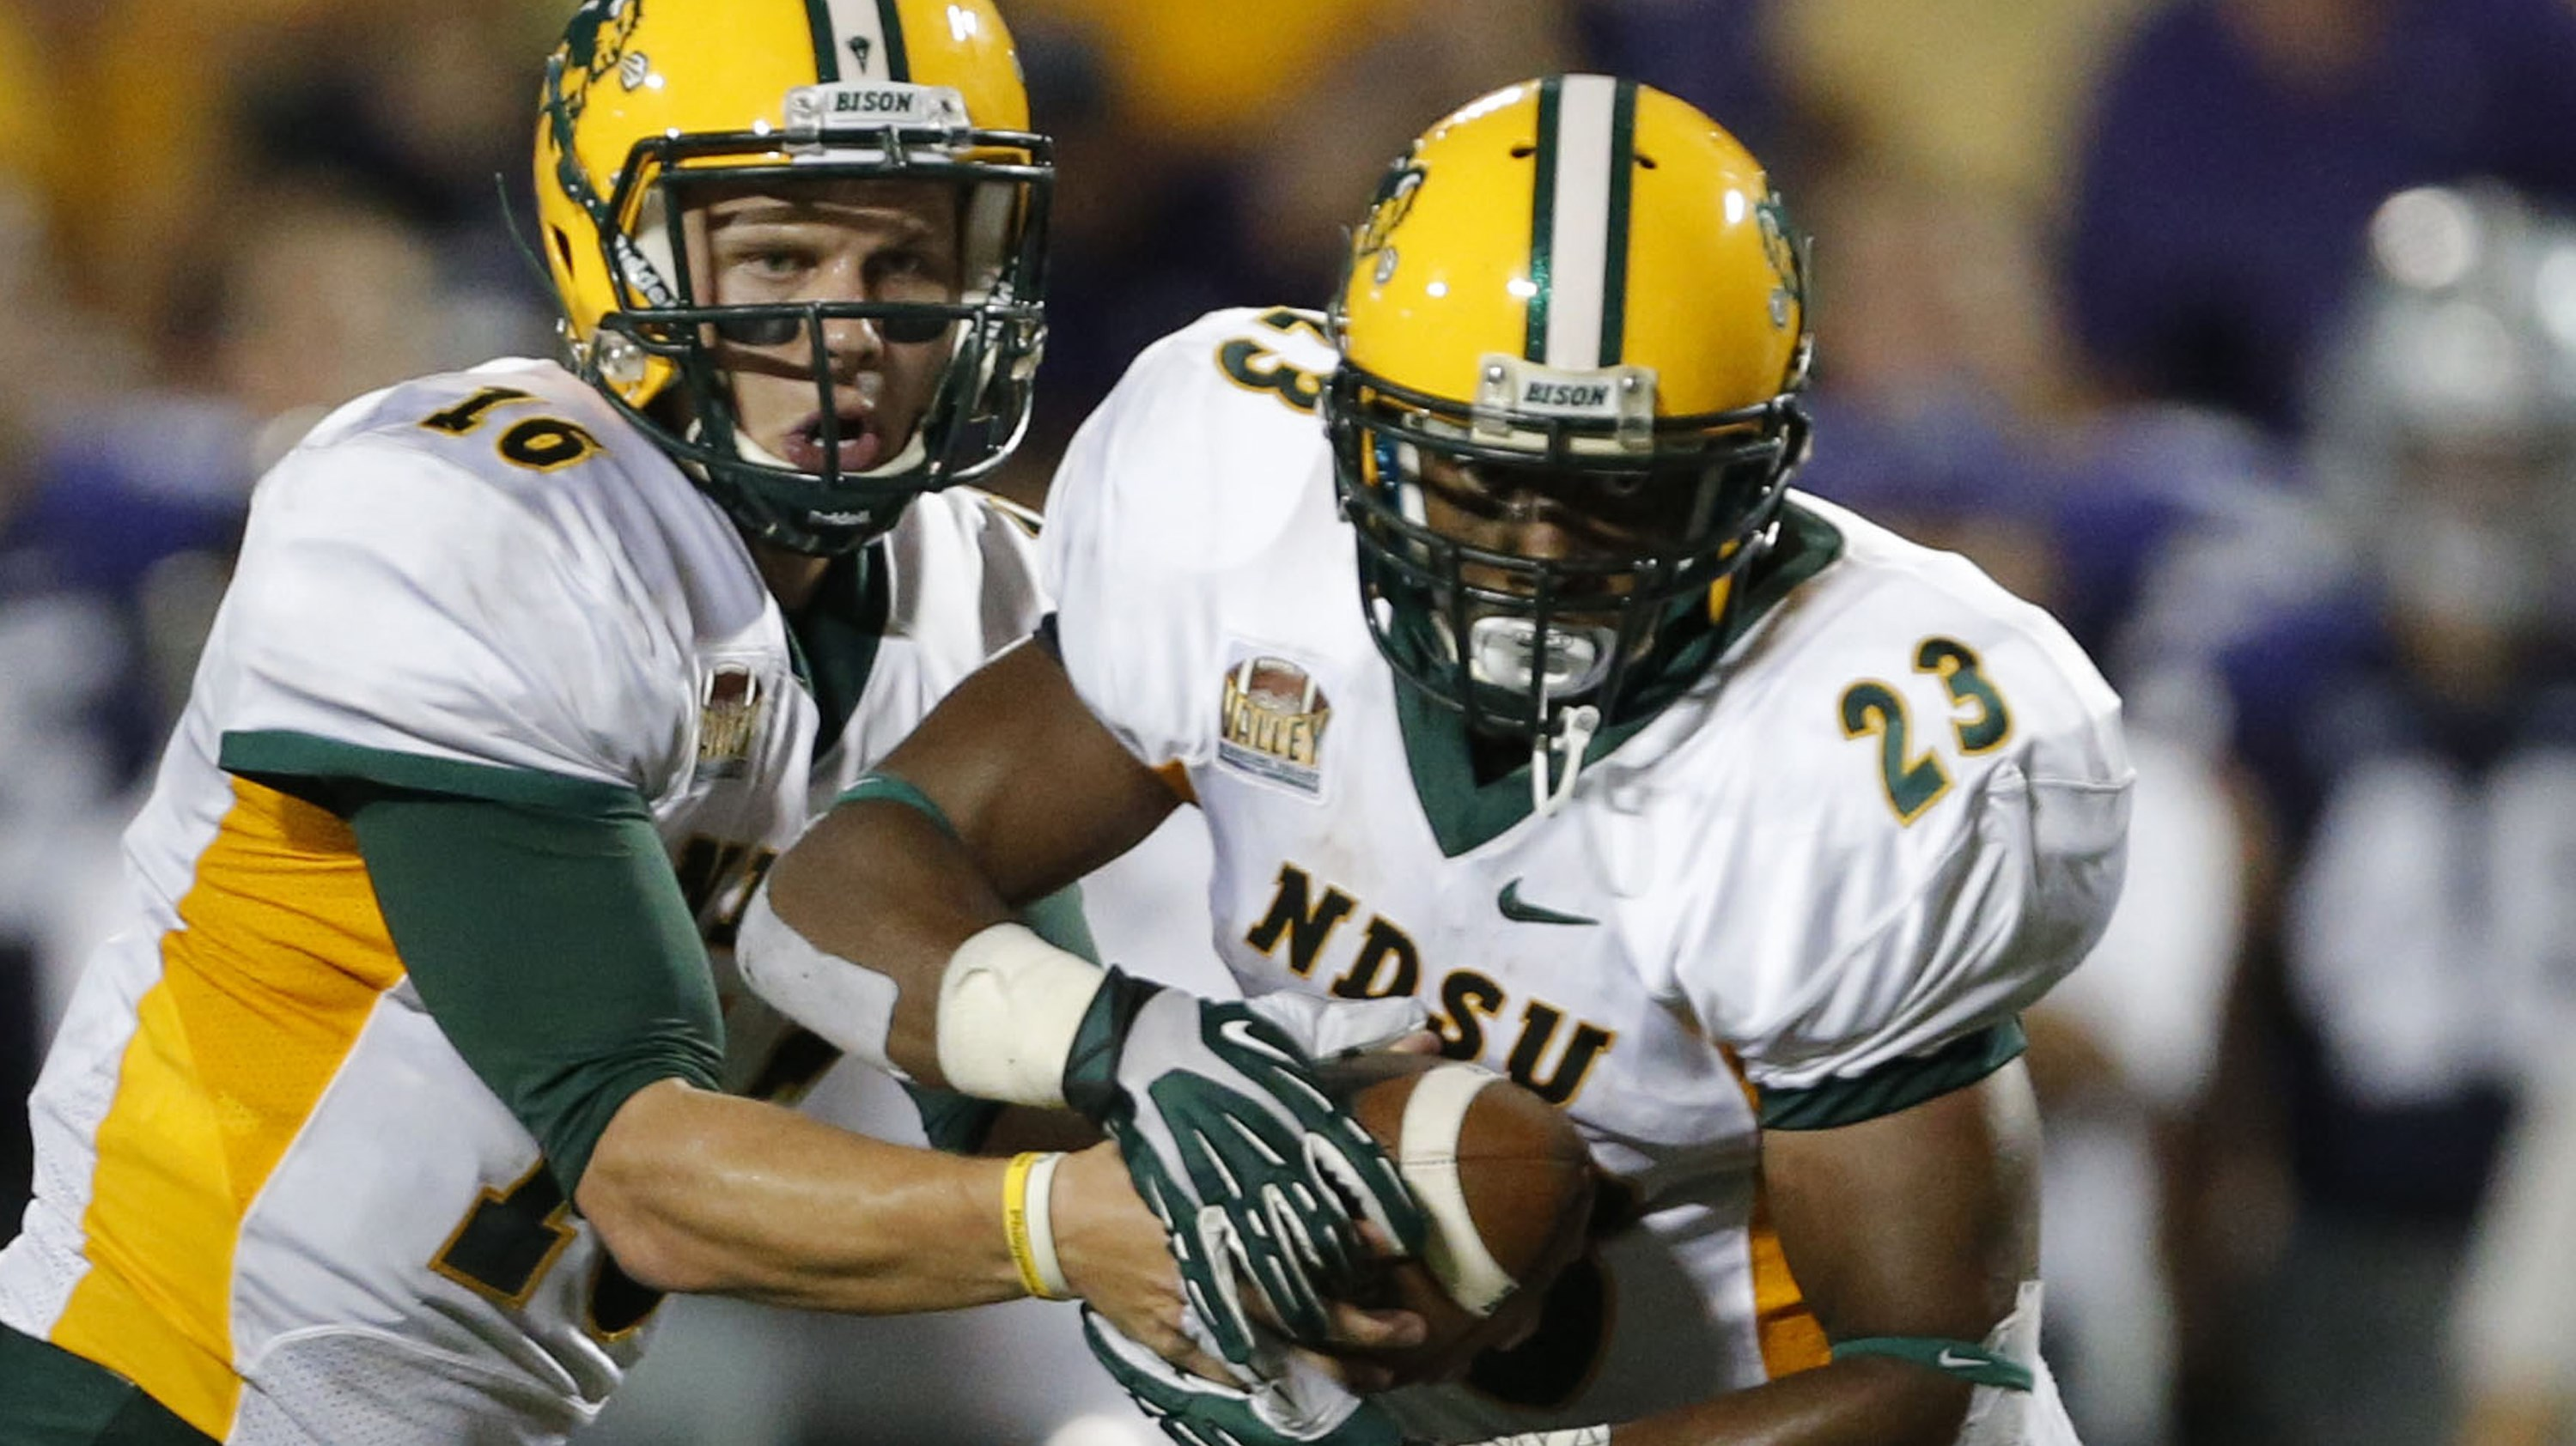 File - In this Aug. 30, 2013 file photo North Dakota State quarterback Brock Jensen (16) hands off to running back John Crockett (23) during an NCAA college football game against Kansas State in Manhattan, Kan. Crockett says hes happy that  Bison head coa